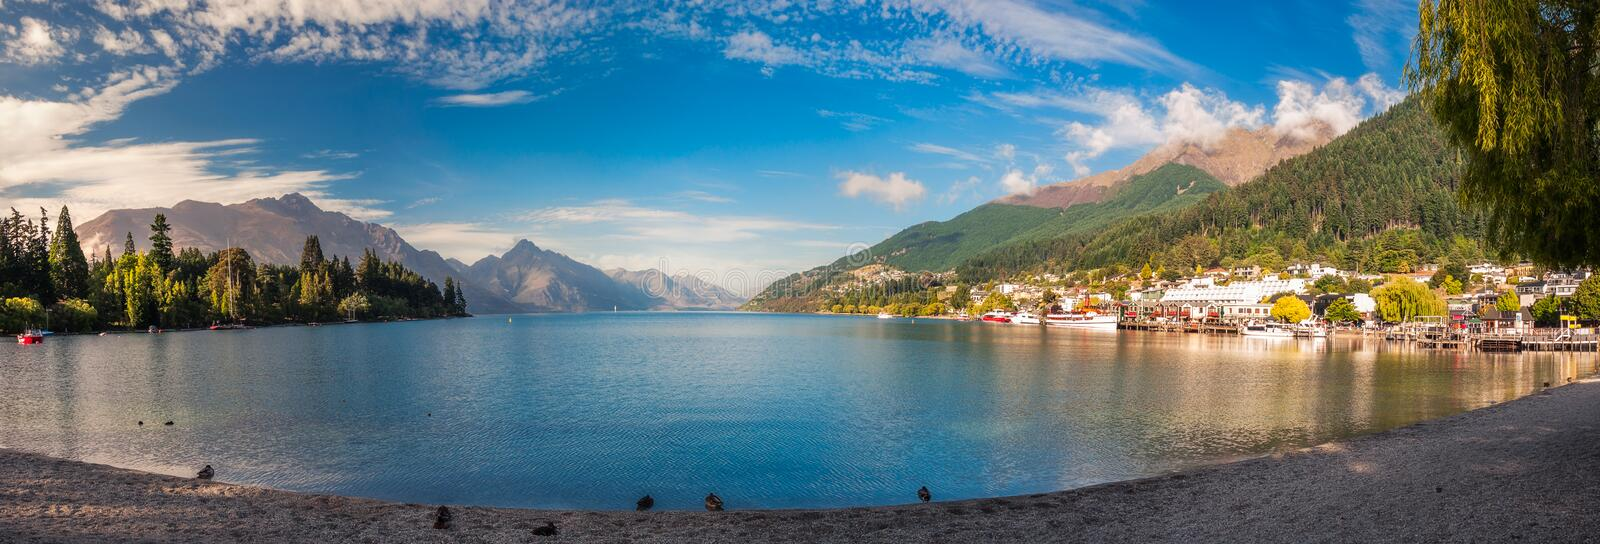 Queenstown Bay Panorama, New Zealand. royalty free stock image